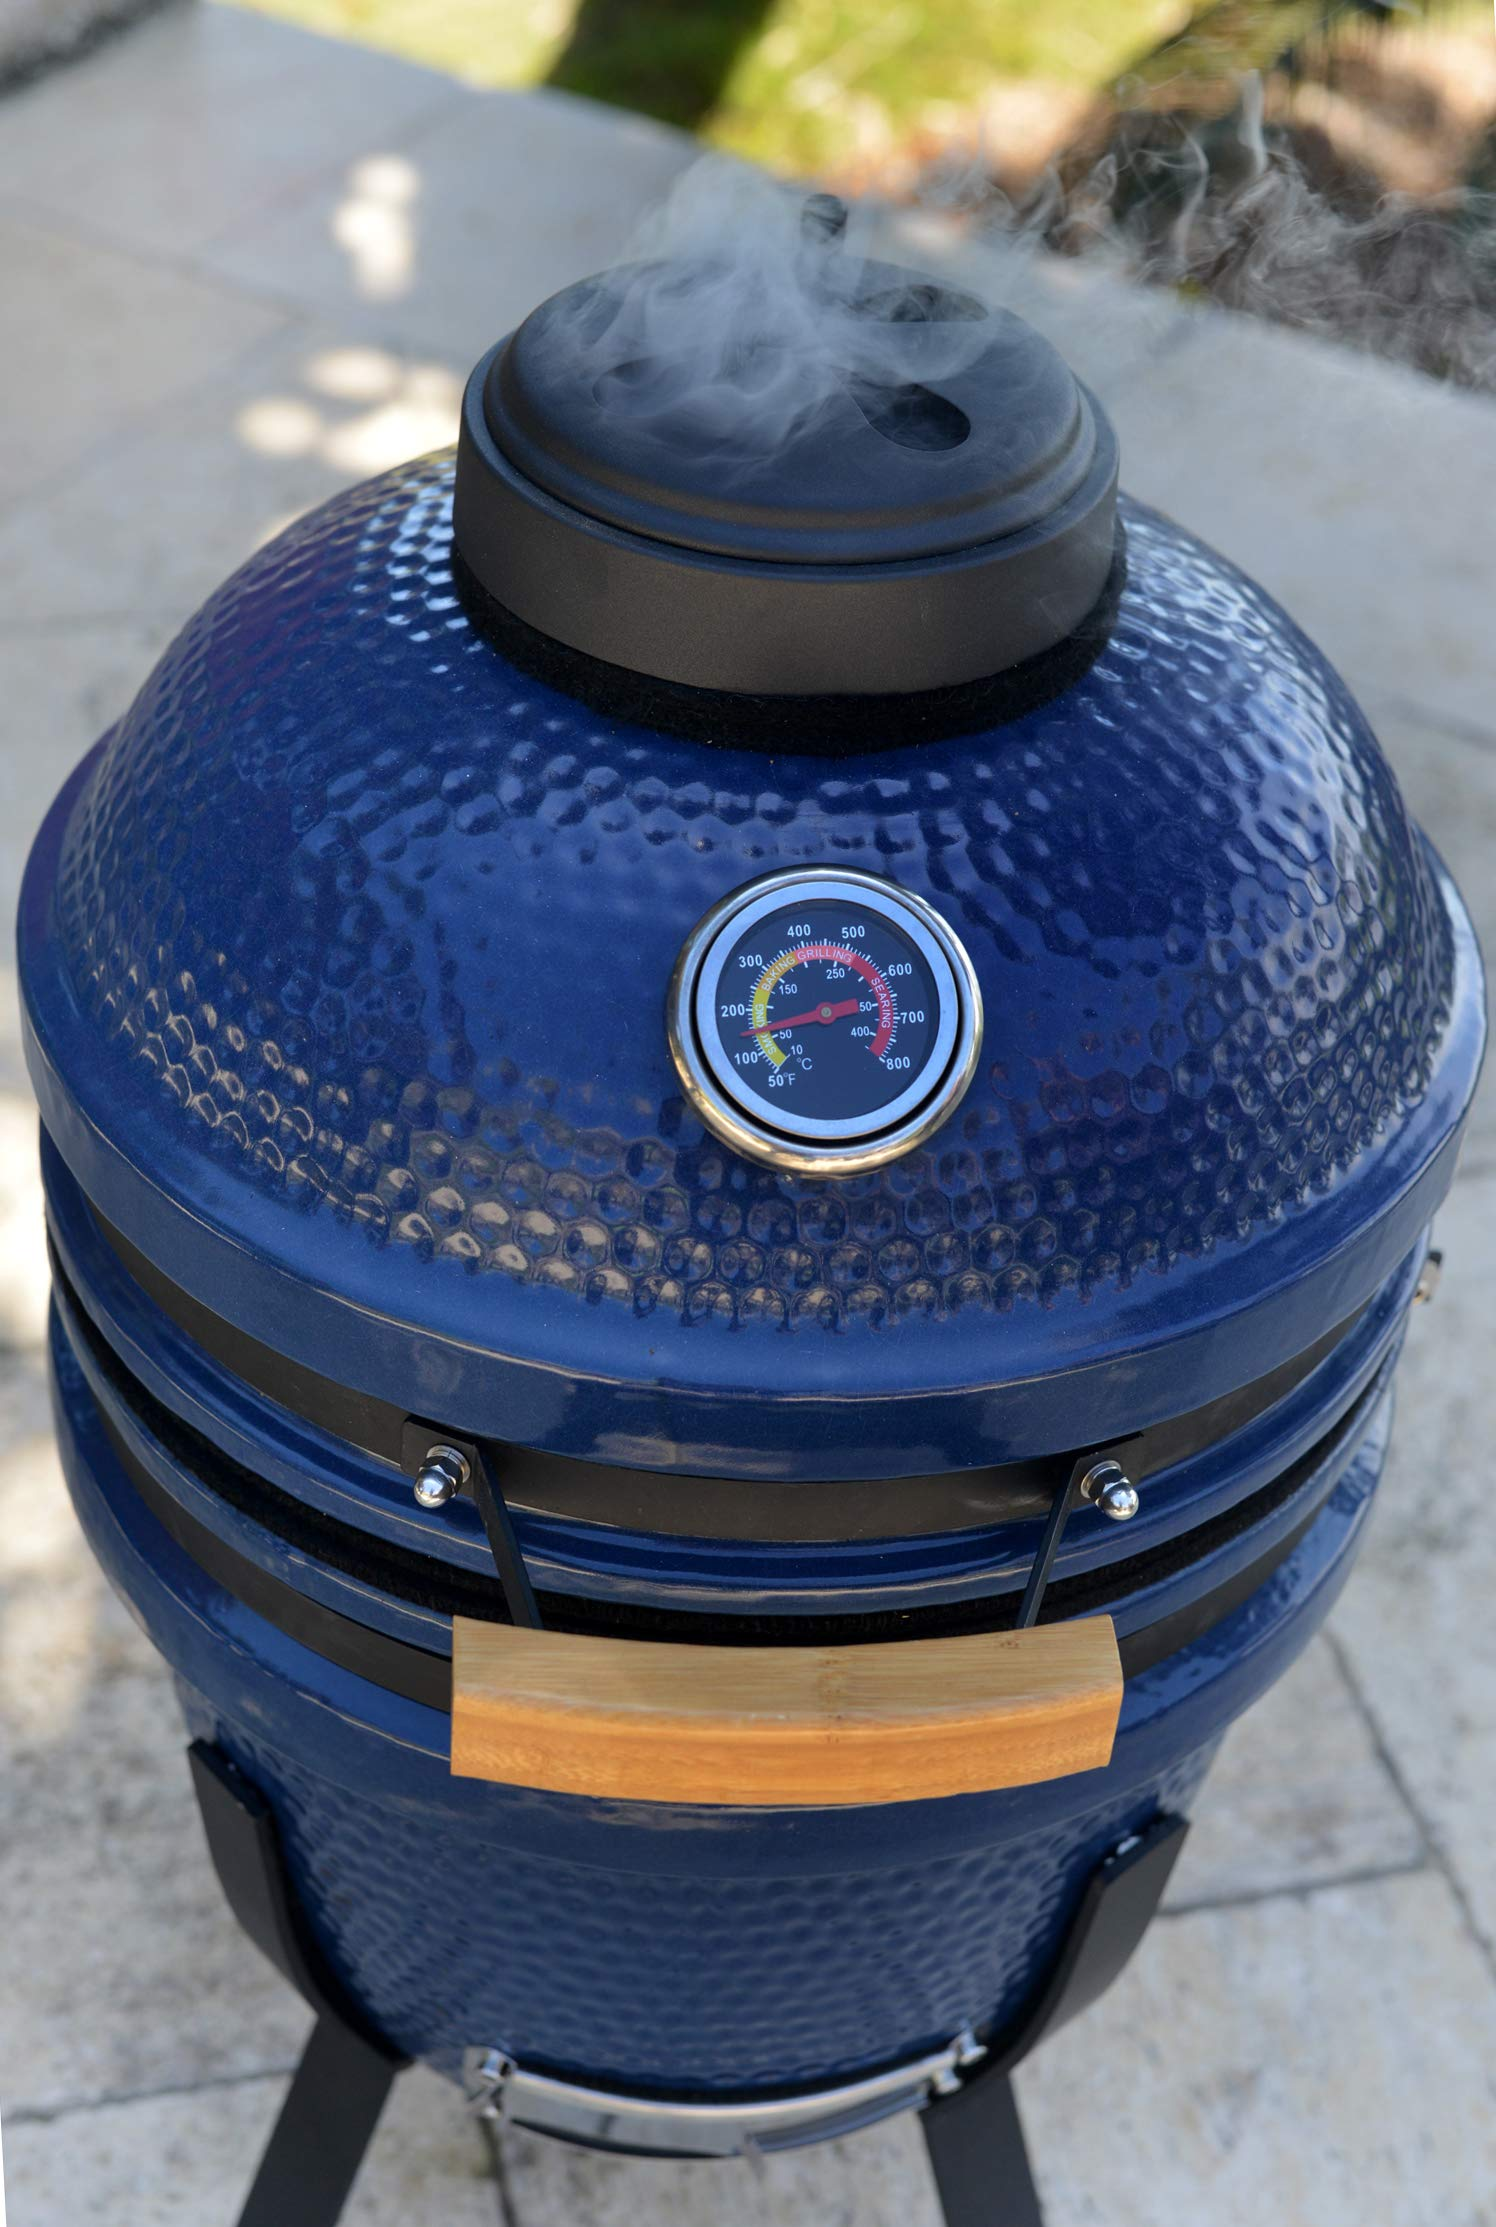 Lonestar Chef SCS-K15B Charcoal Kamado Grill, 15'', Blue by Lonestar Chef